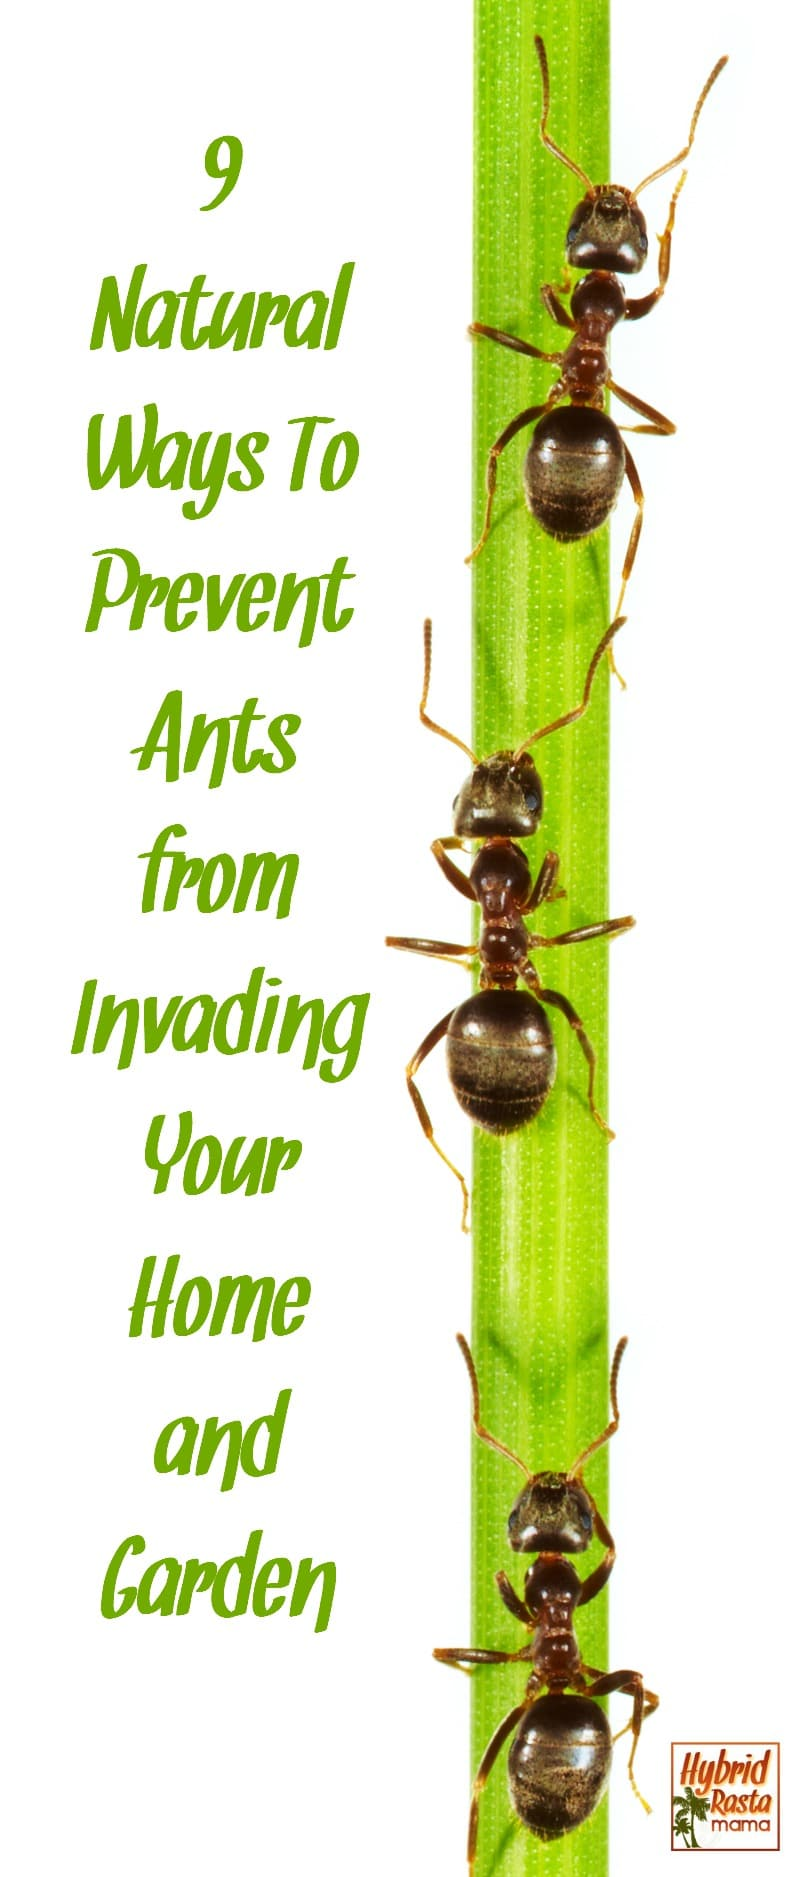 Do you have ants in your pants? Of course not! But you might have them in your home and garden area. Learn how to prevent ants from invading your living spaces with these 9 natural and cost effective products from HybridRastaMama.com.  #pestcontrol #ants #bugspray #greenliving